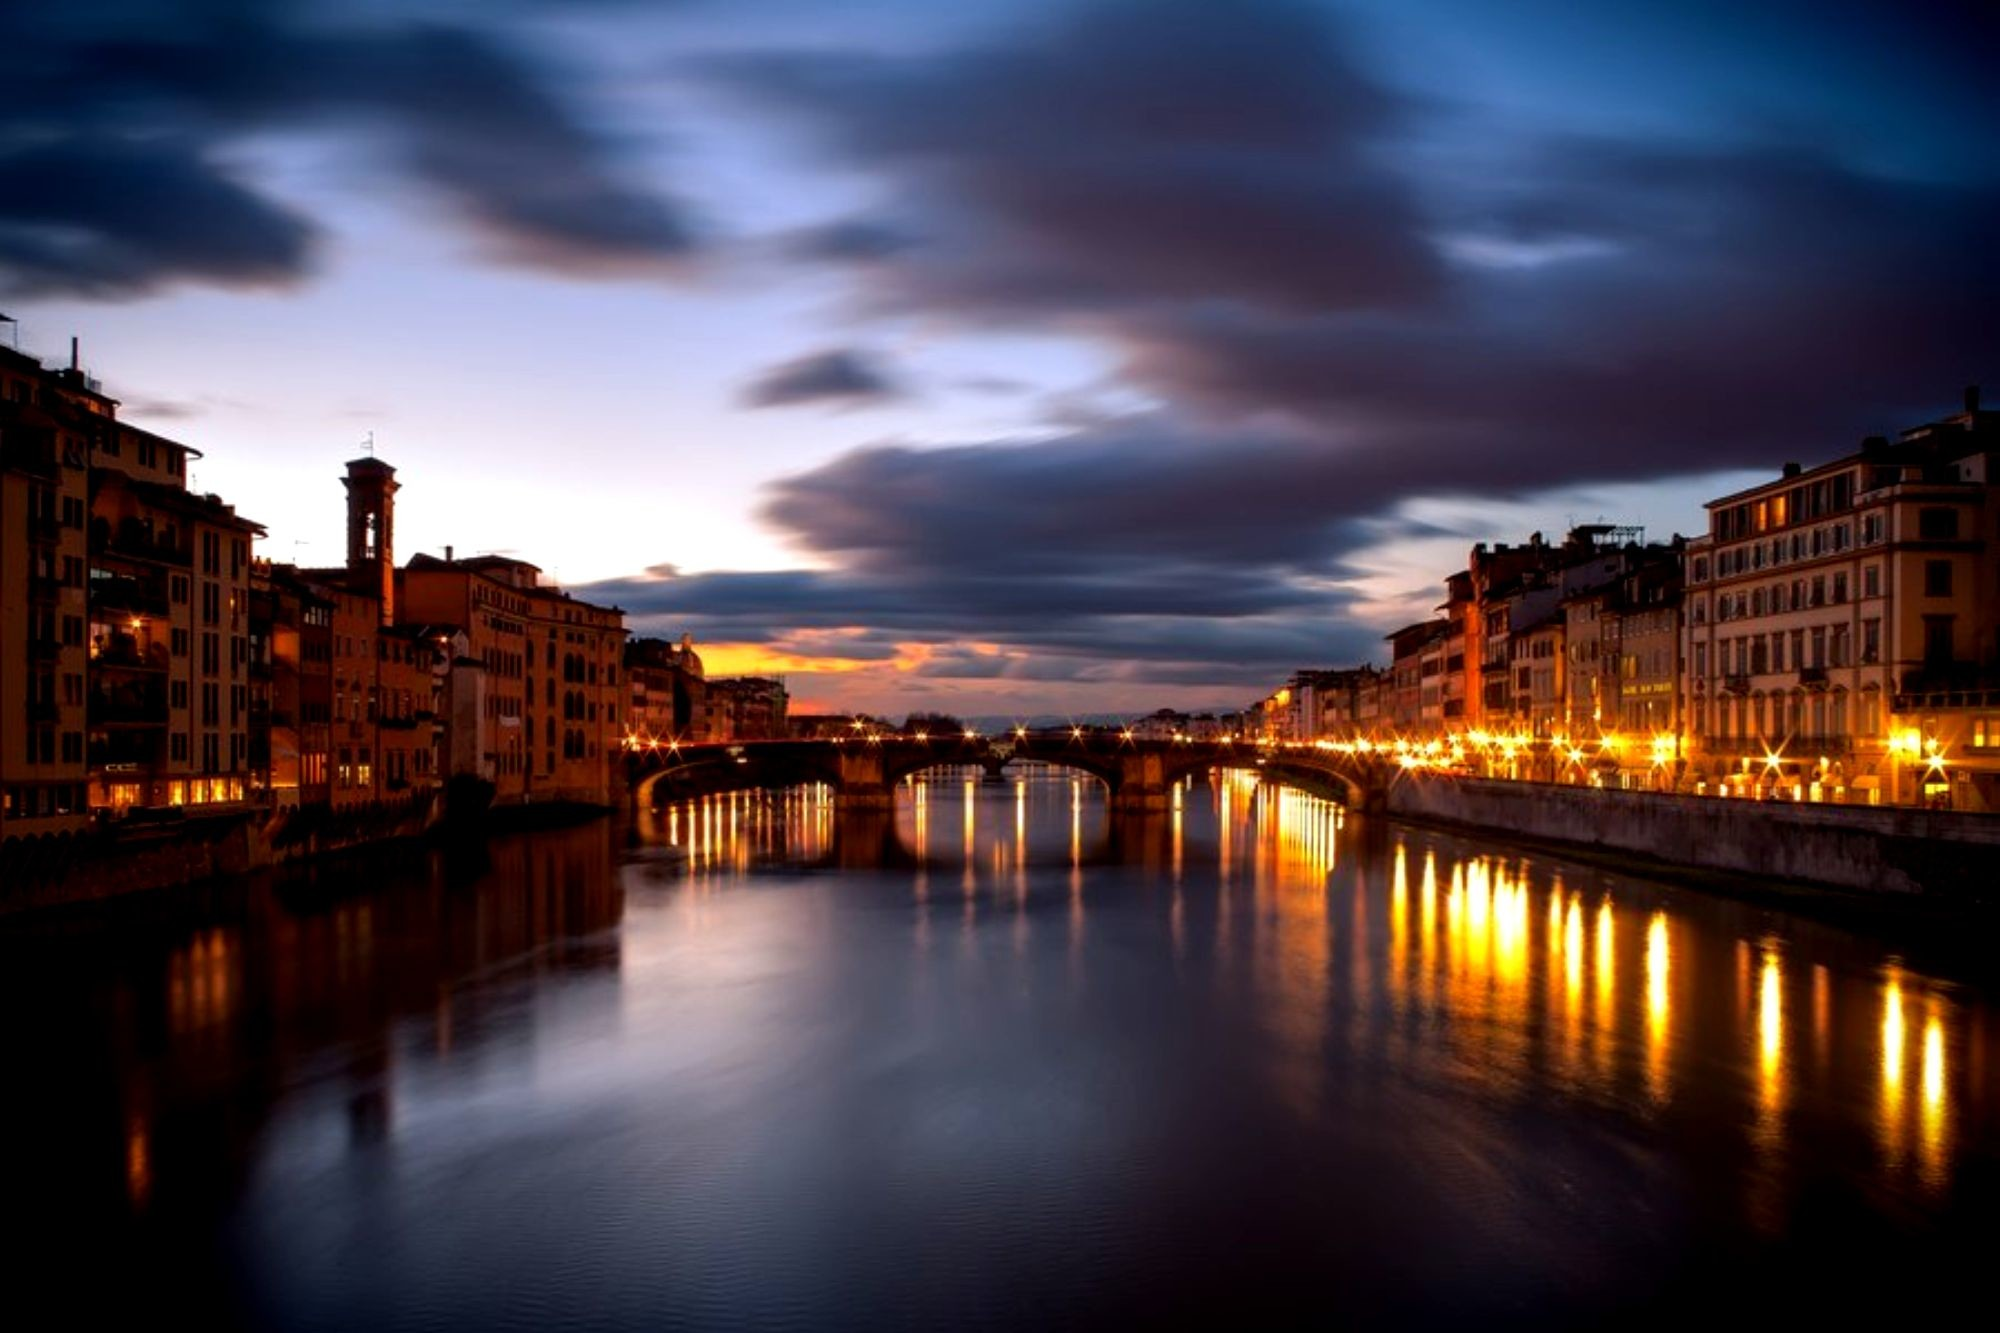 2000x1333 Man Made Florence Cities Italy HD Wallpaper - HD Wallpapers